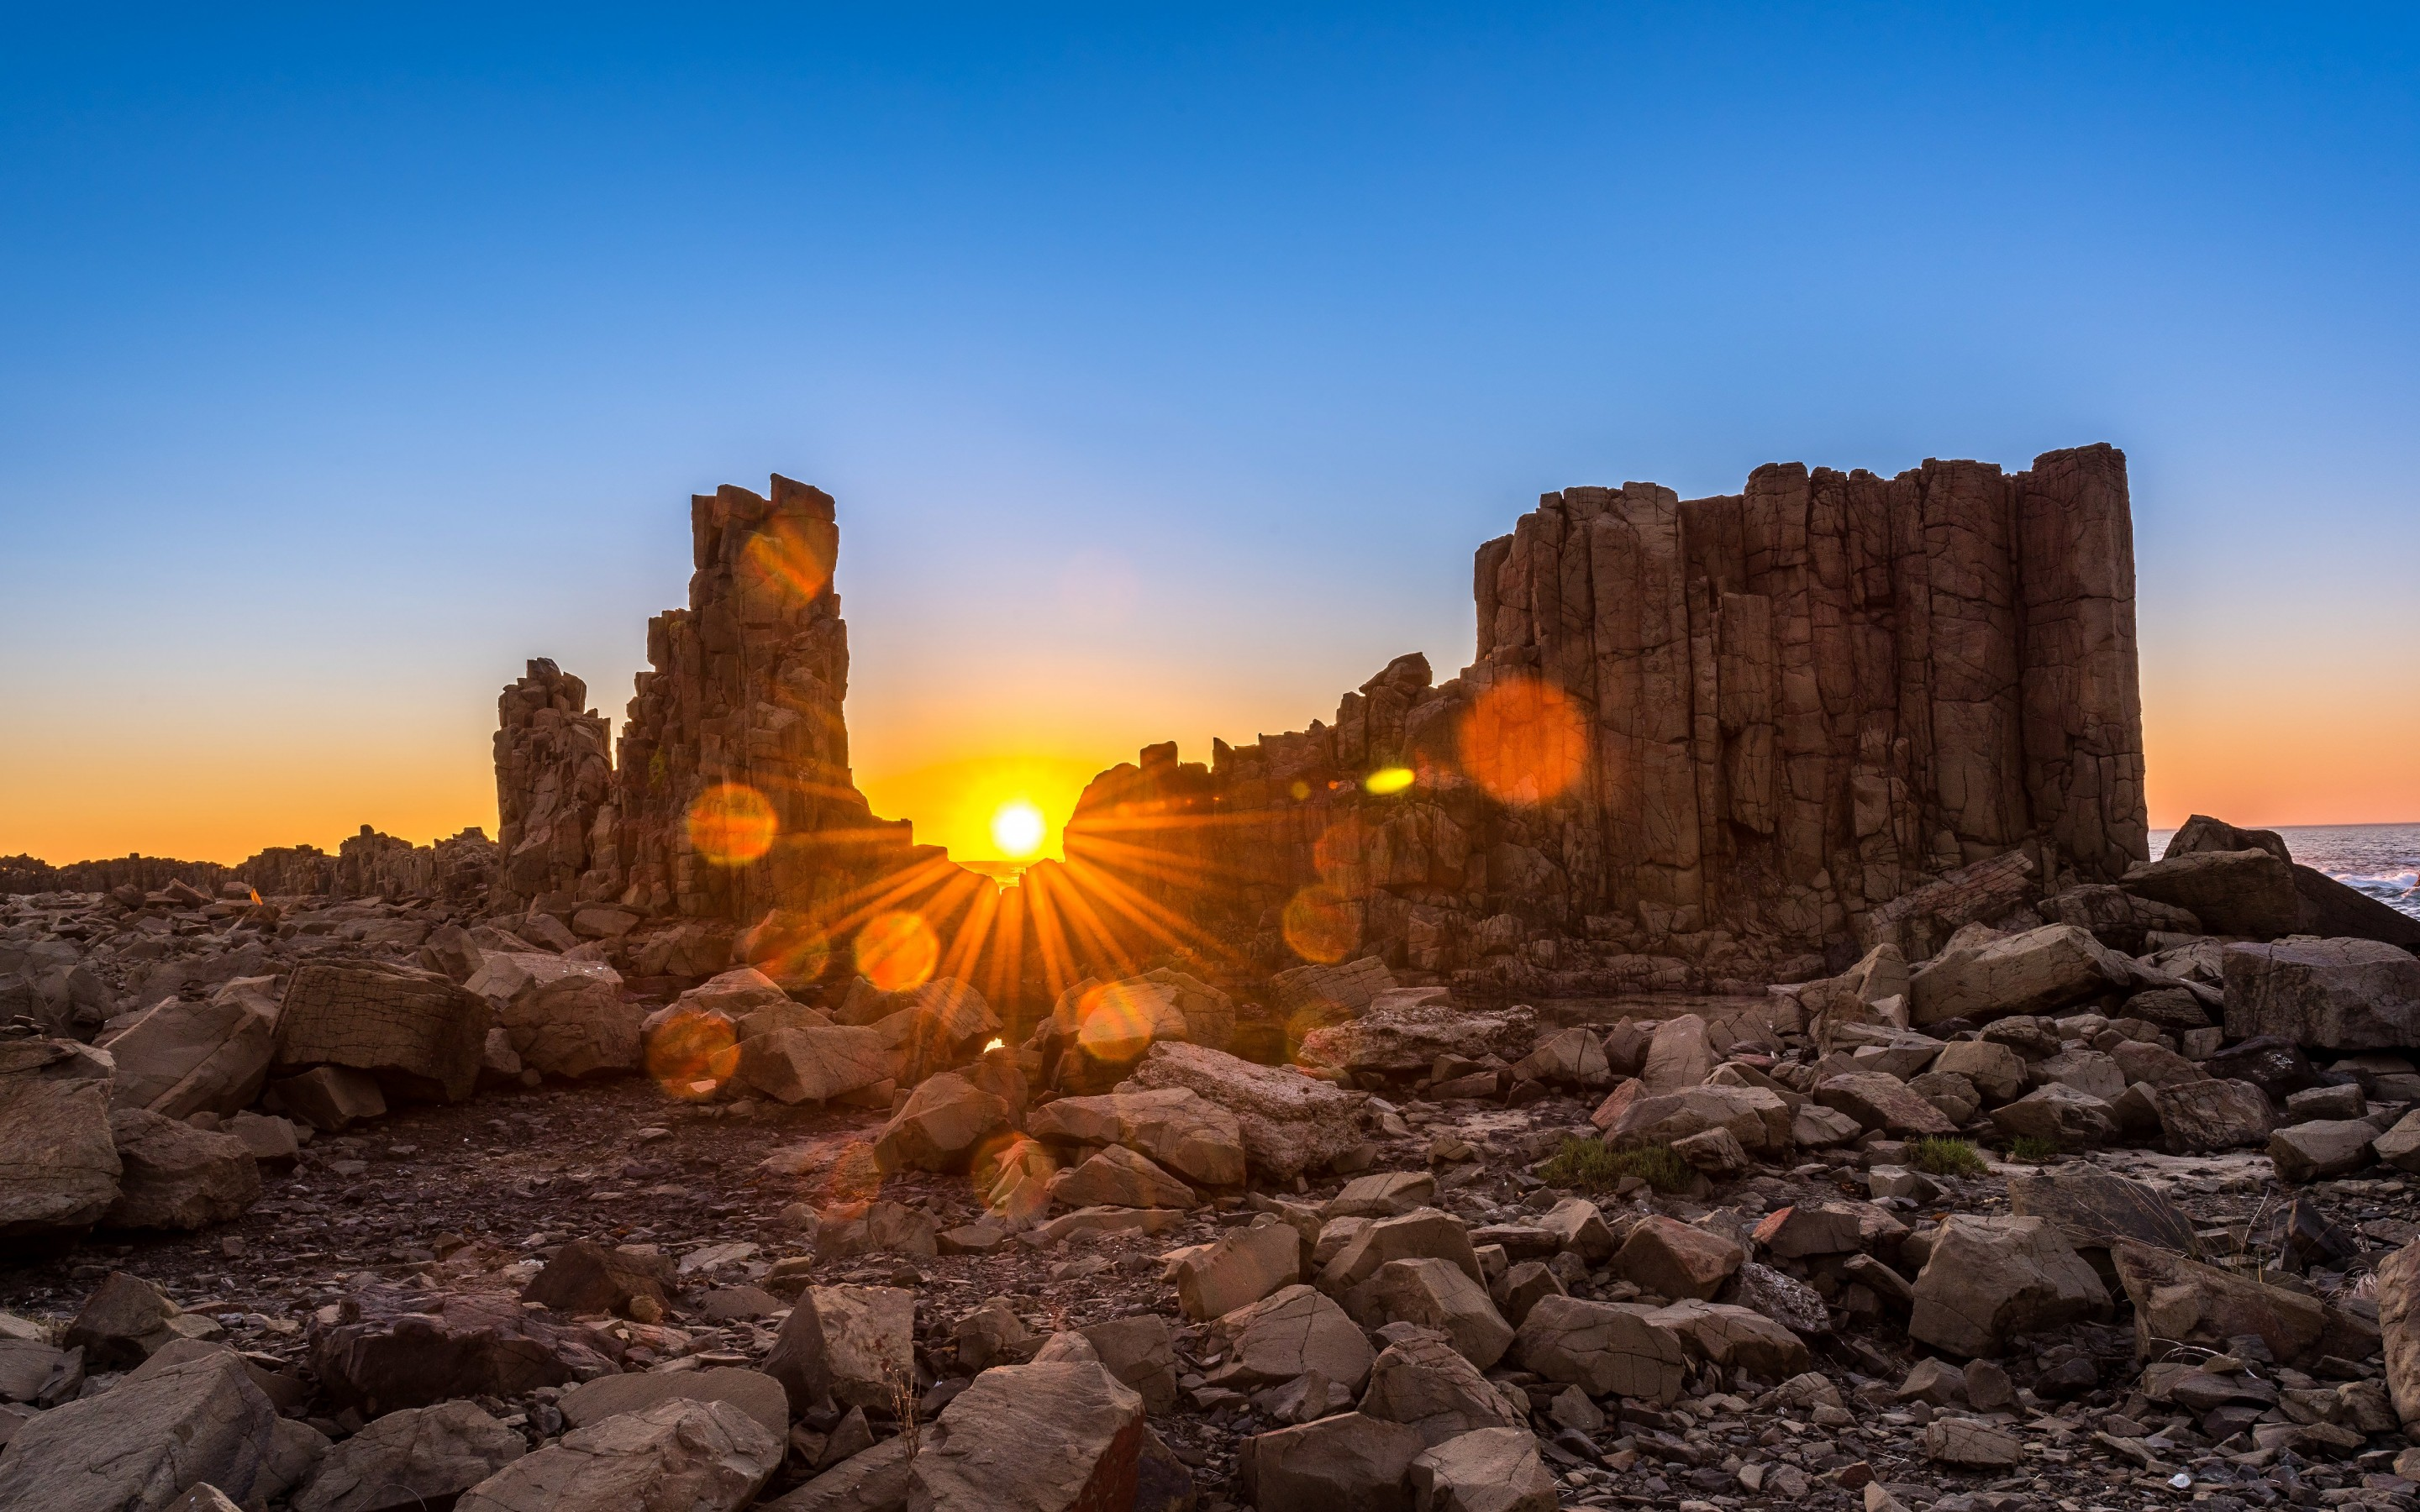 Sunrise Over Bombo Headland, Australia Wallpaper for Desktop 2880x1800